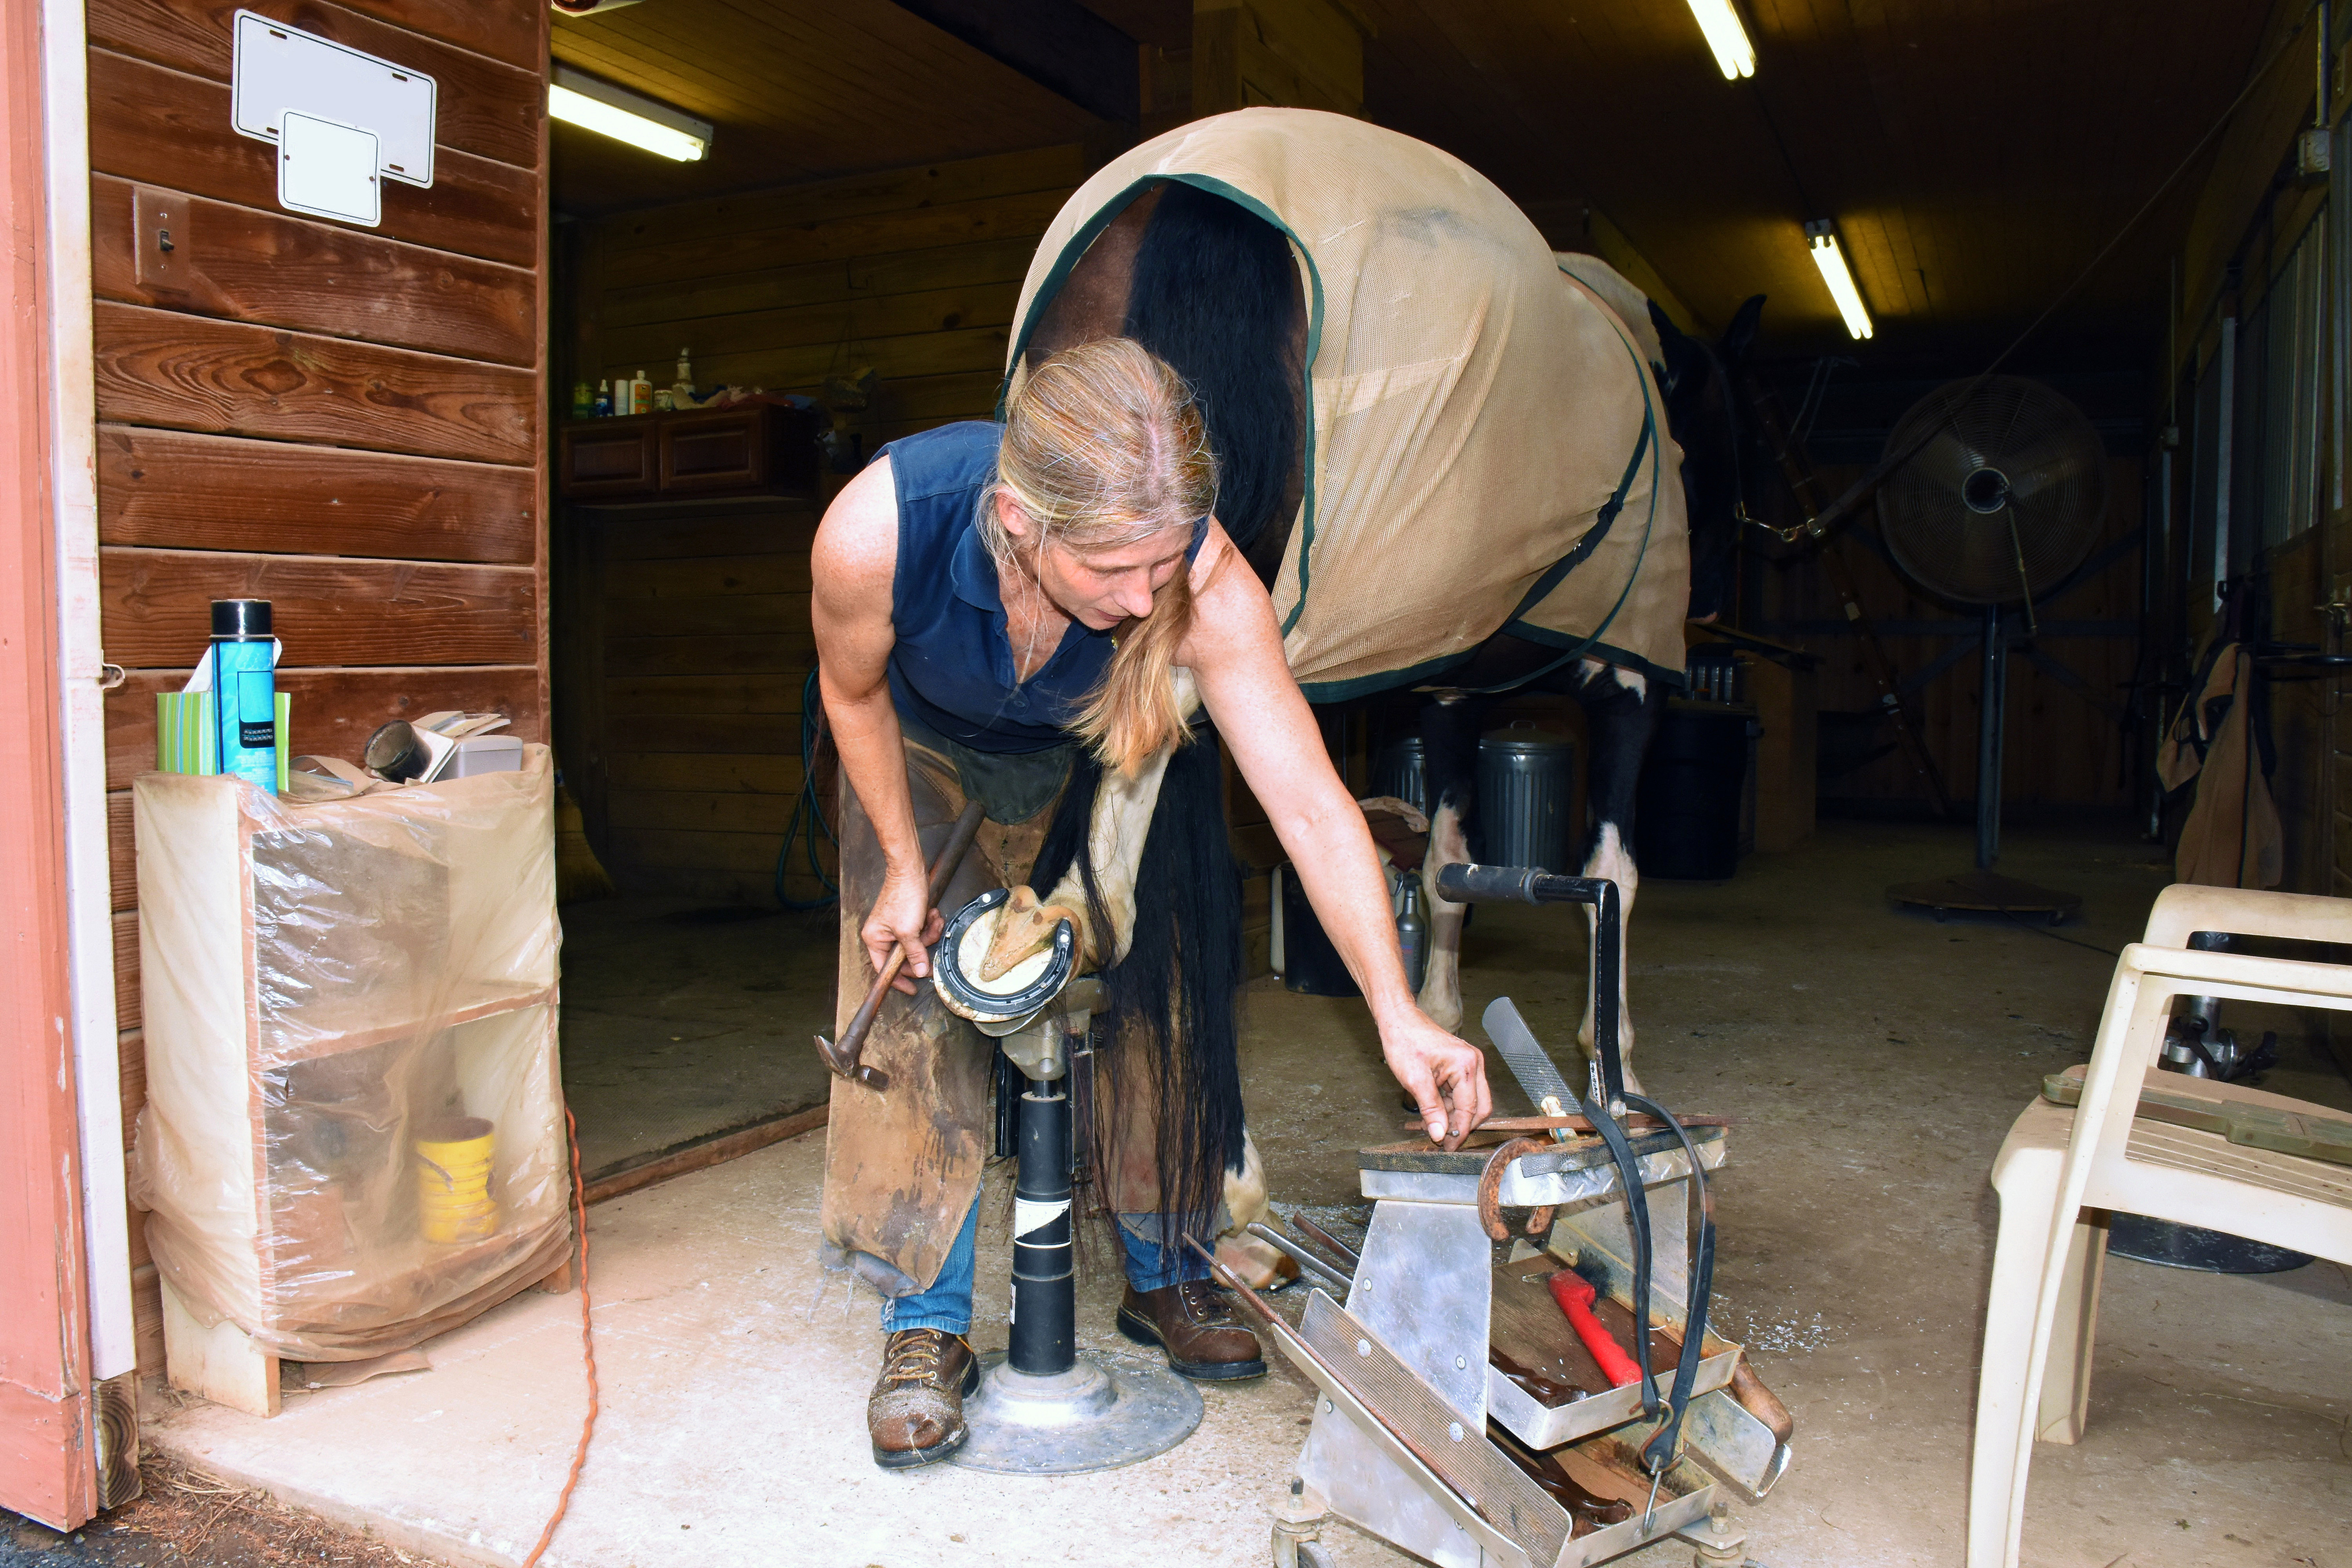 A farrier is shoeing a horse's back leg